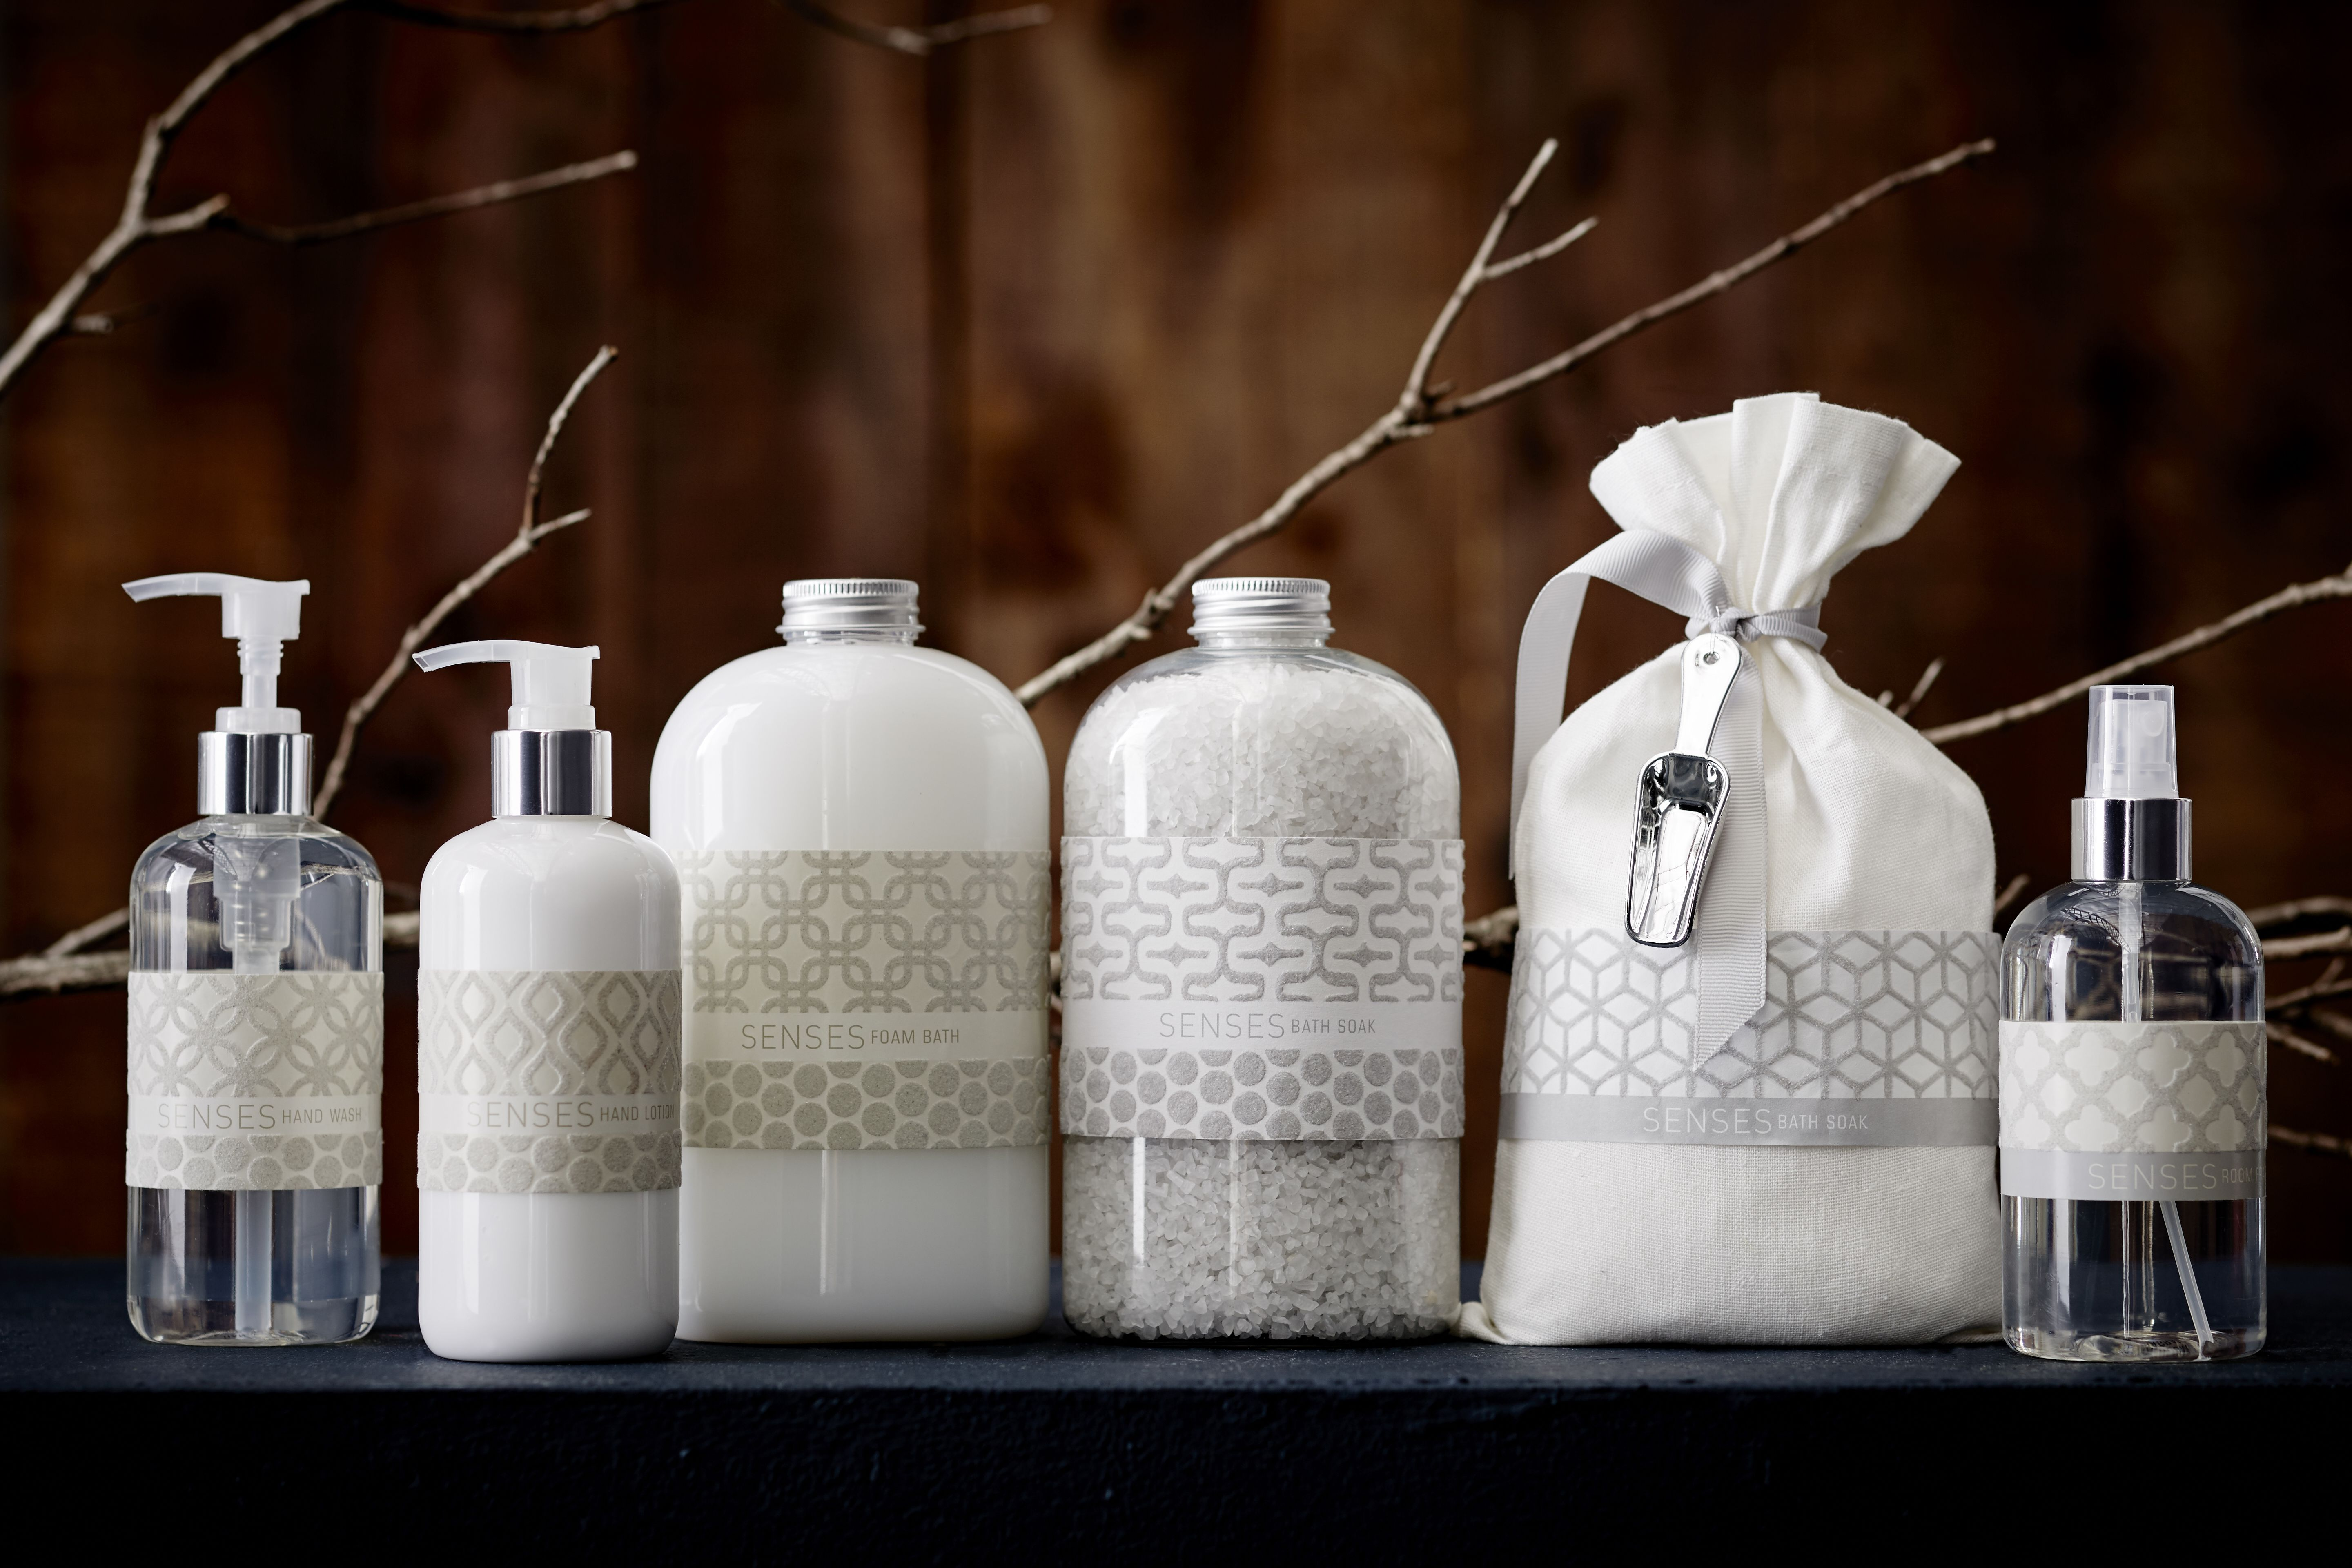 A hot bath with luxurious foam bath, salts and lotions will #AddWarmth to a cold weekend afternoon.